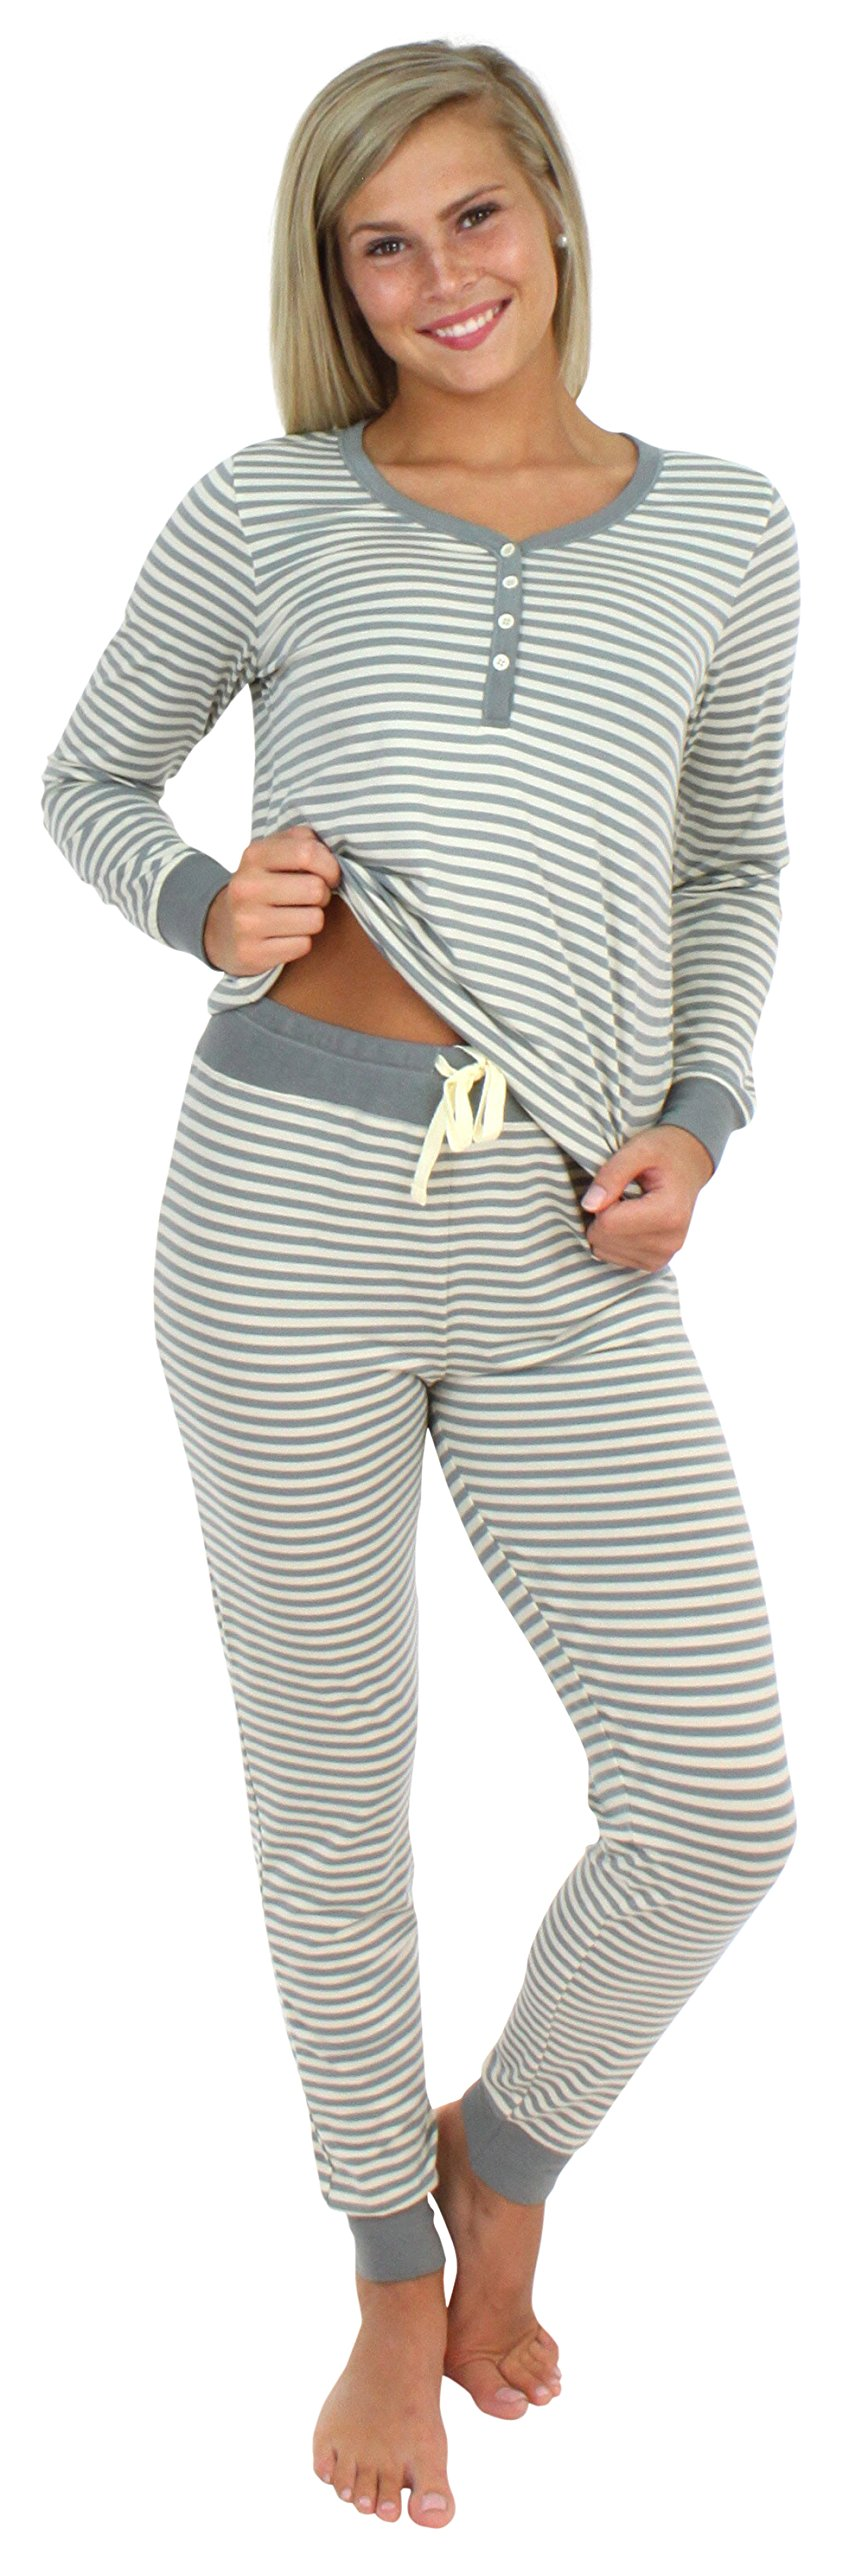 Sleepyheads Women's Sleepwear Knit Long Sleeve Henley and Pant Pajamas PJ Set-Stripes (SH1150-4043-SML)